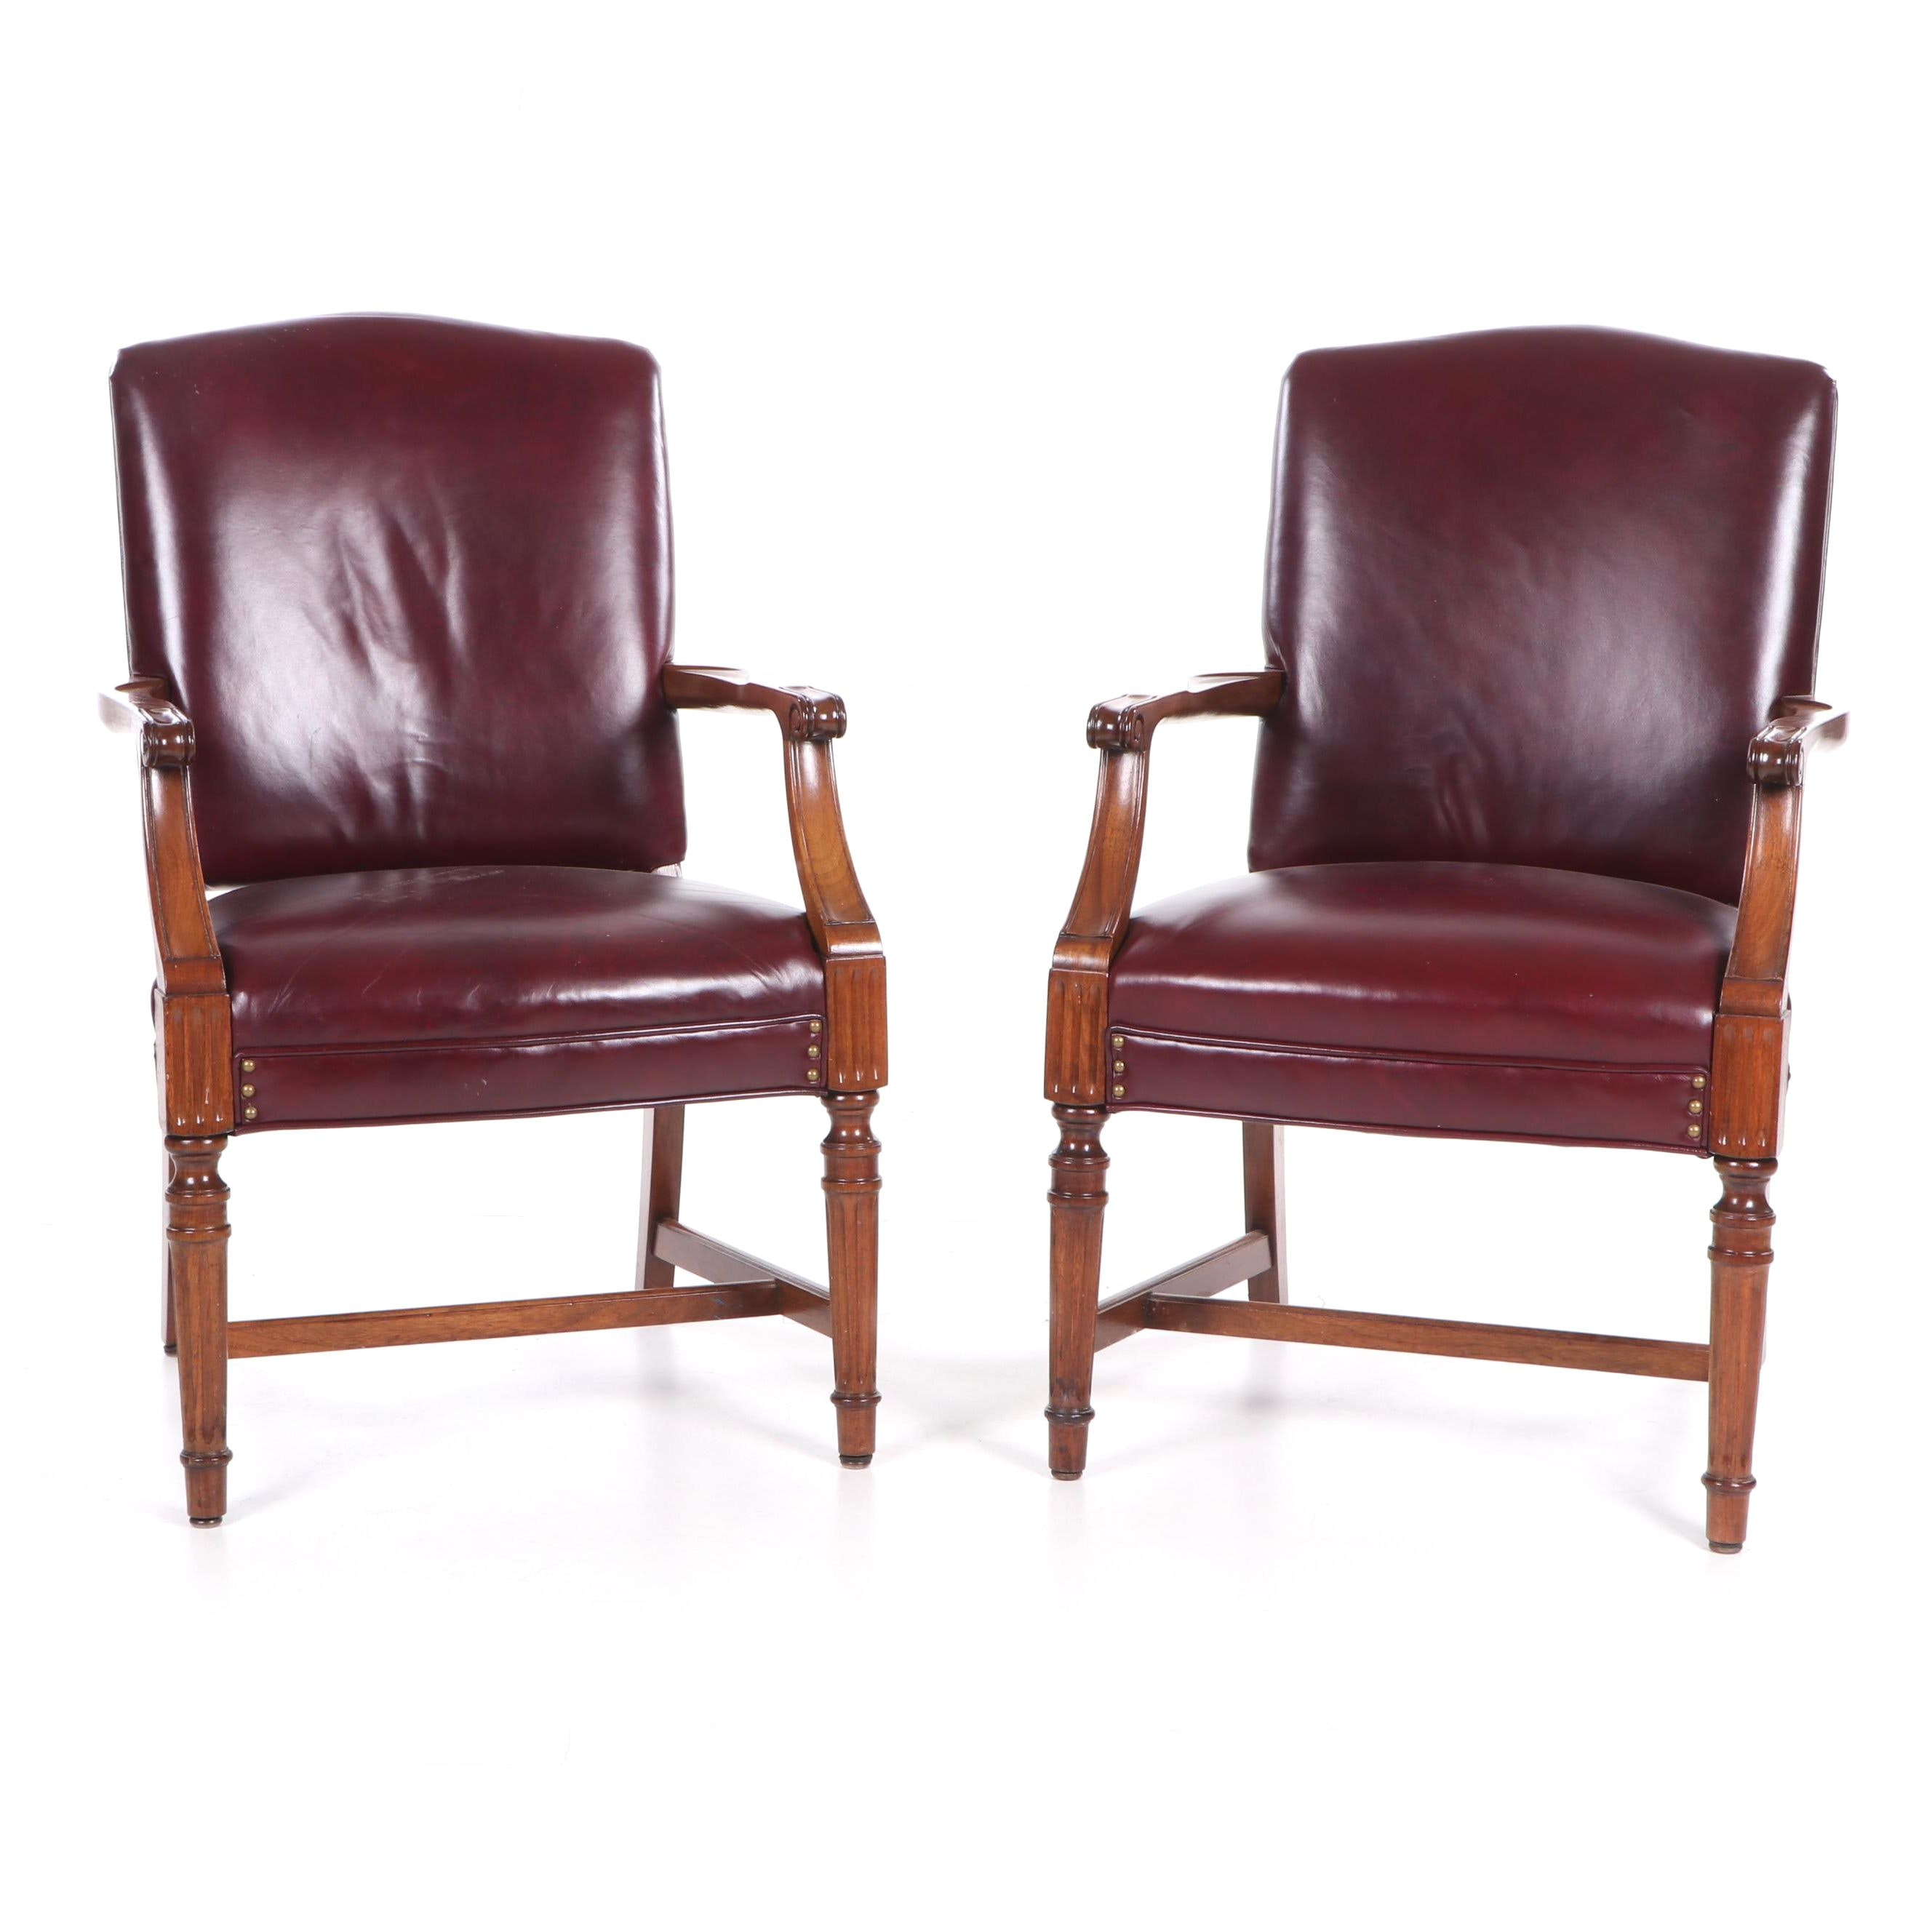 Directoire Style Wood and Vinyl Upholstered Armchairs, Mid 20th Century